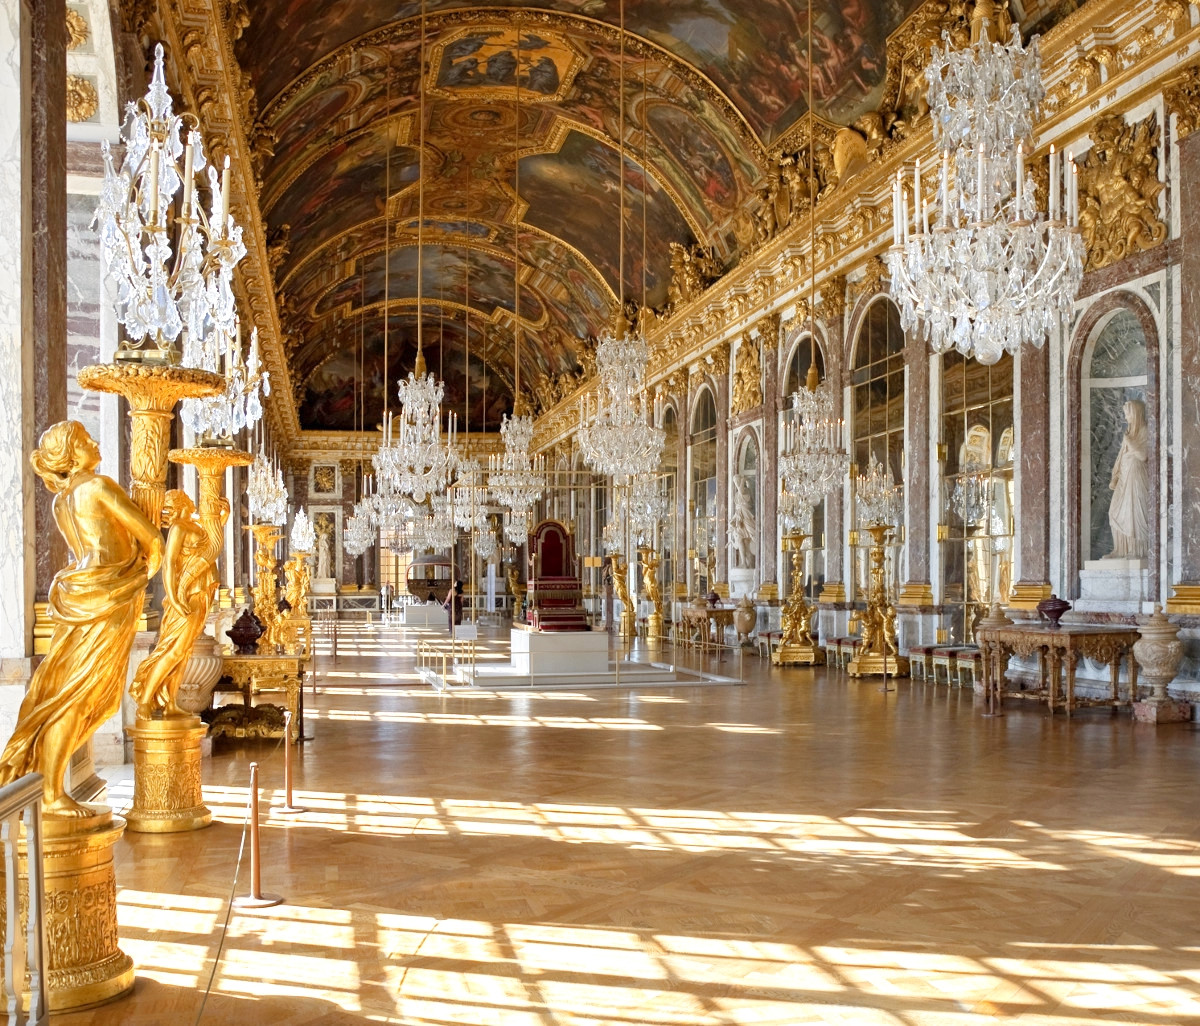 Halls of Mirrors at Versailles. Credit Myrabella